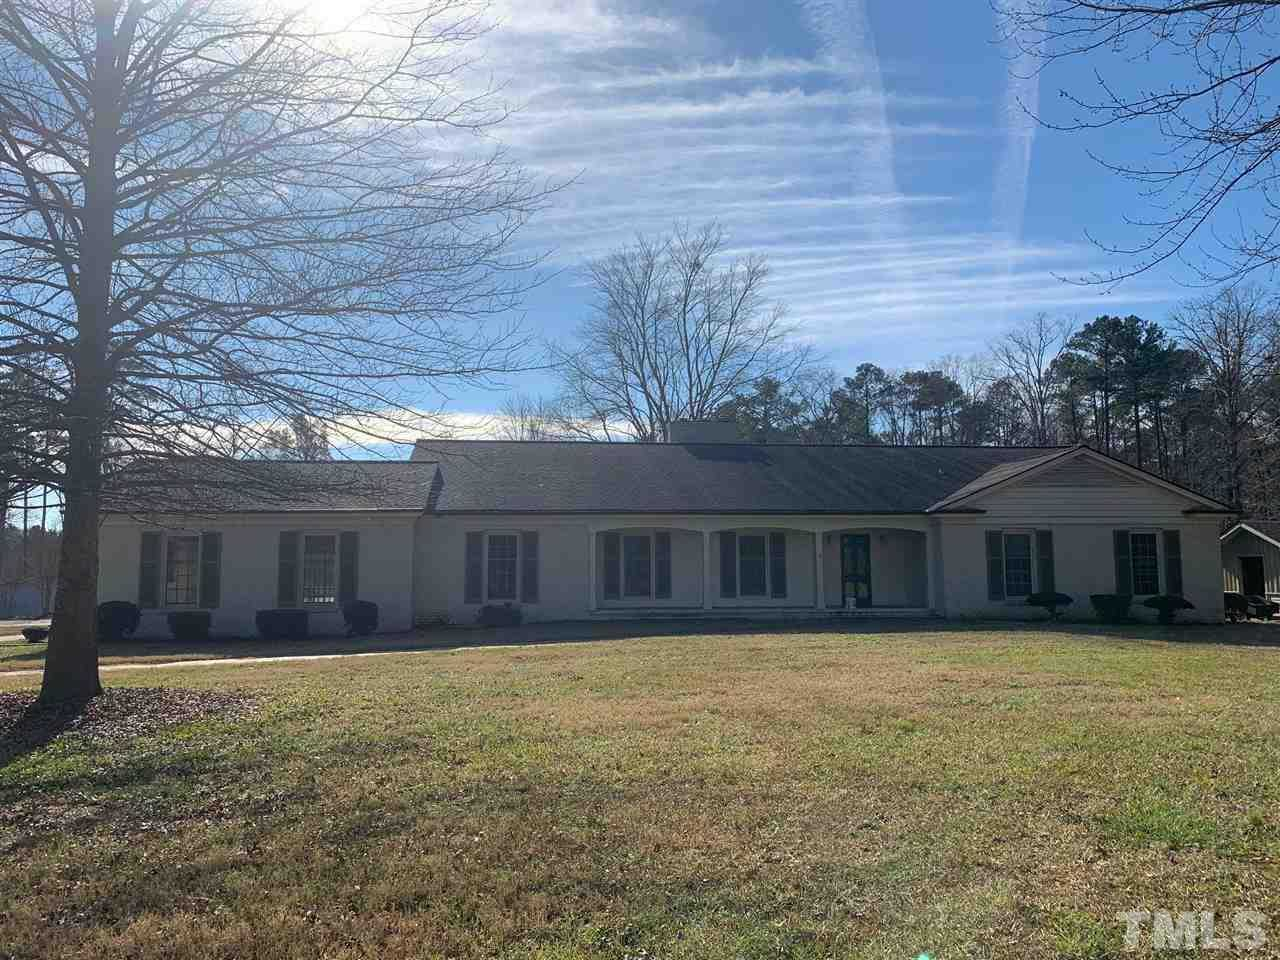 $2,500 - 3Br/3Ba -  for Sale in Not In A Subdivision, Spring Hope